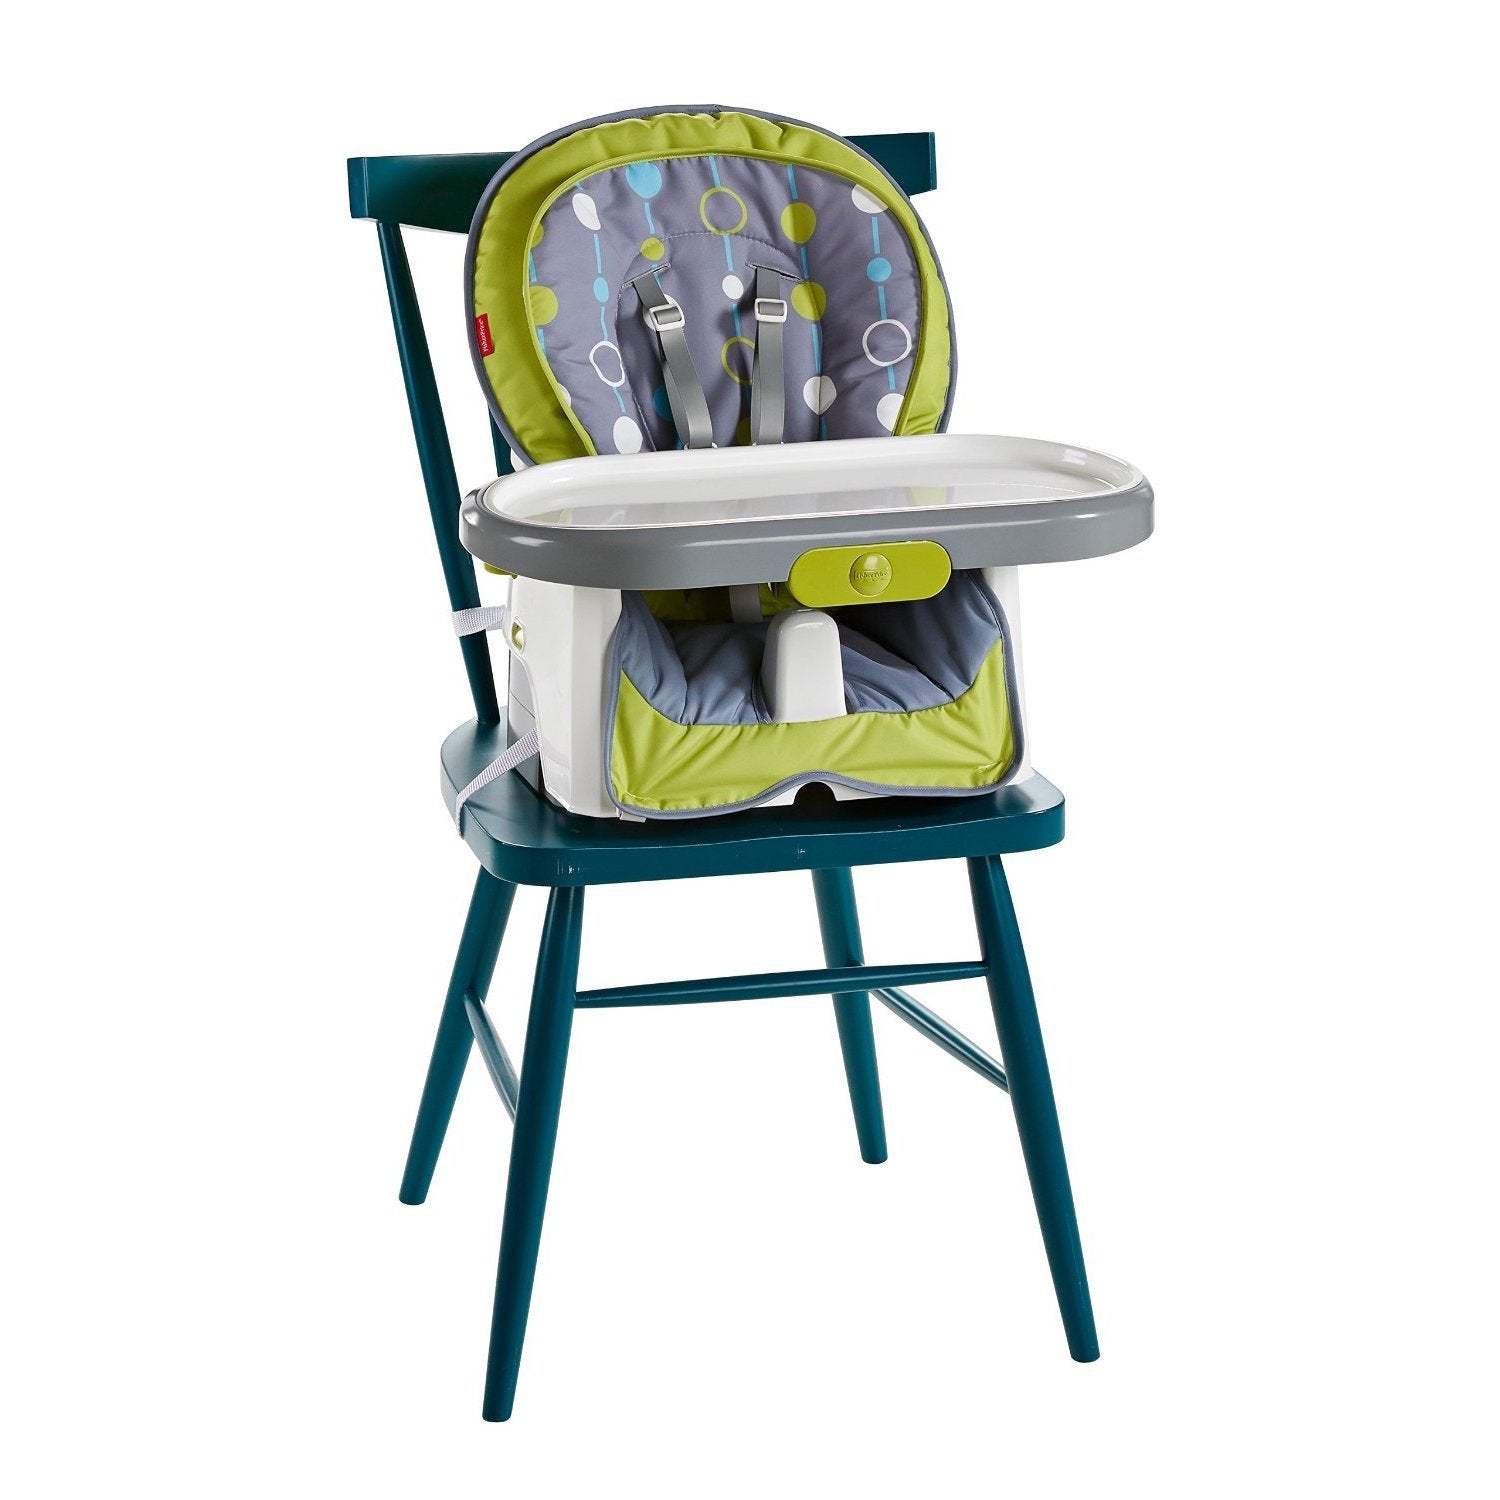 Fisher Price 4 in 1 Total Clean High Chair Free Shipping Today